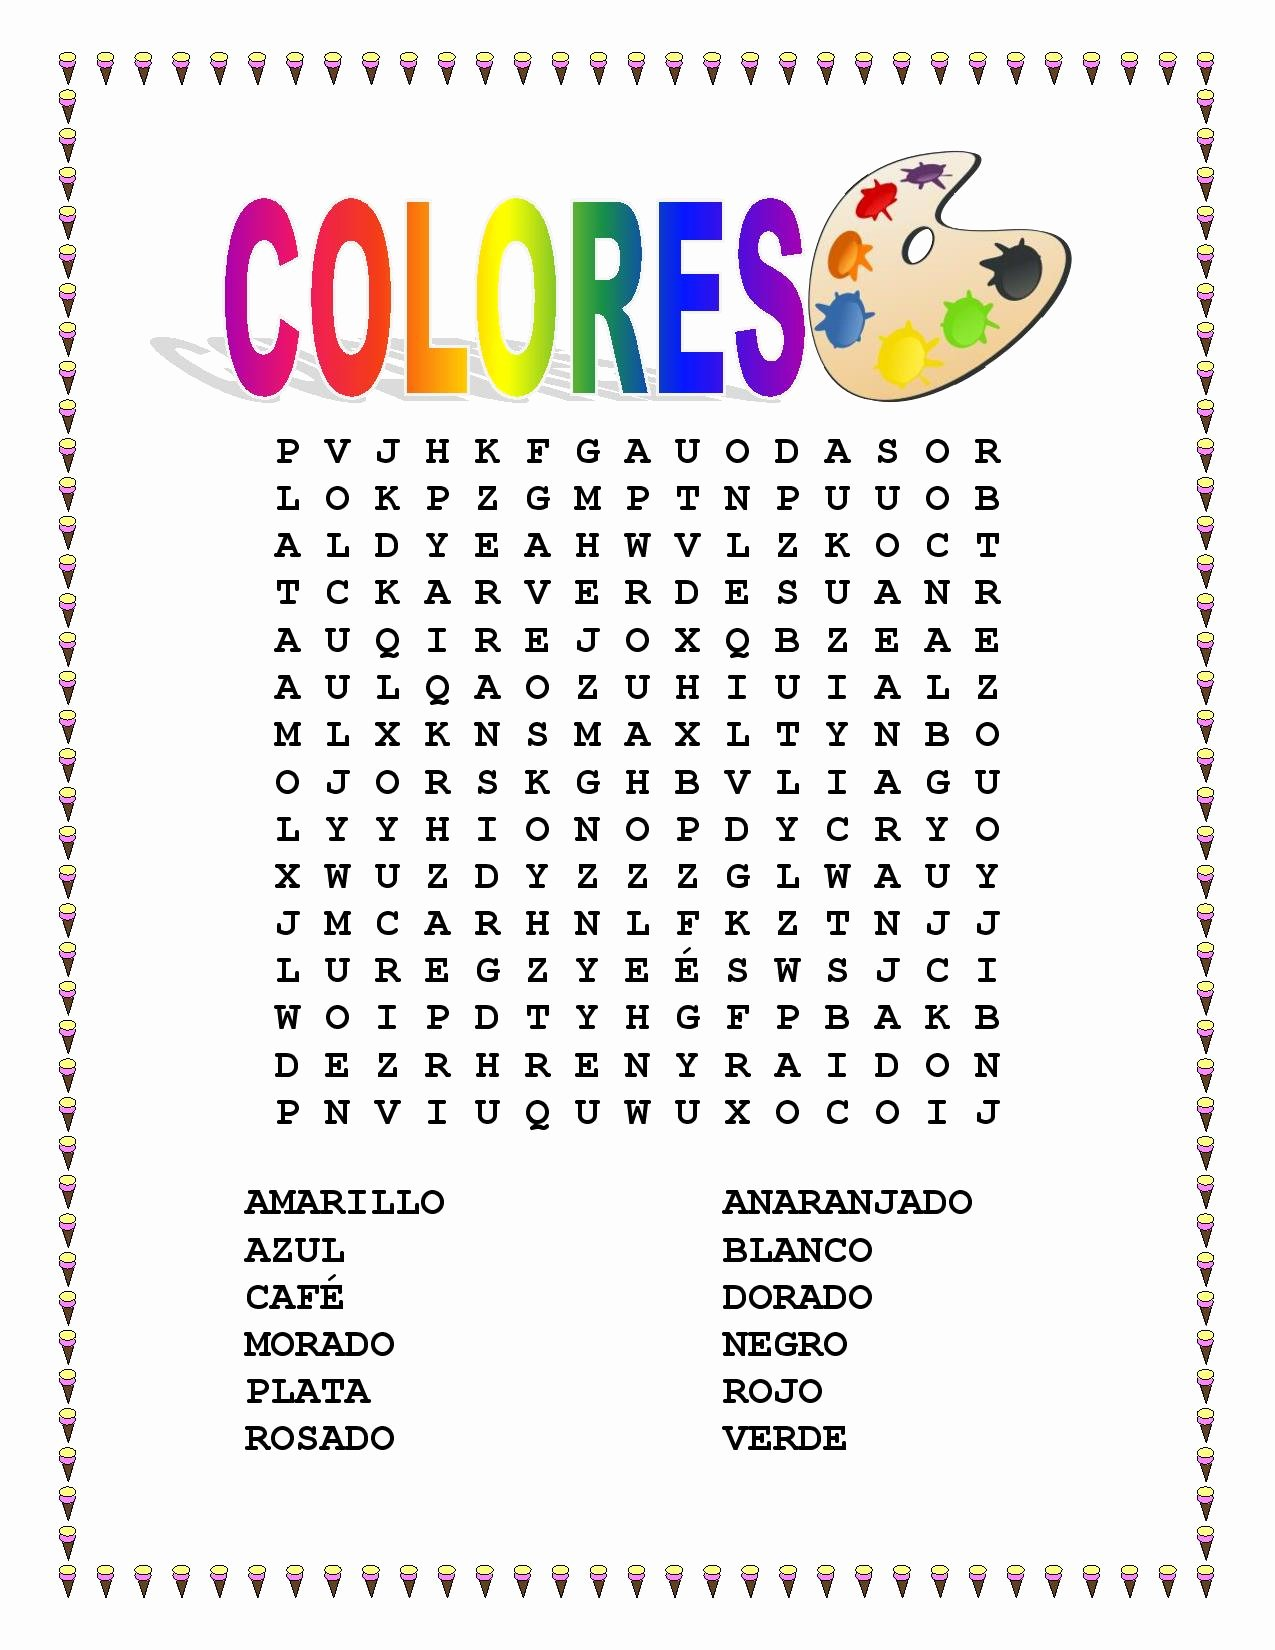 Colors In Spanish Worksheet Beautiful Miscellaneous Lesson Spanish Colors Vocabulary & Word